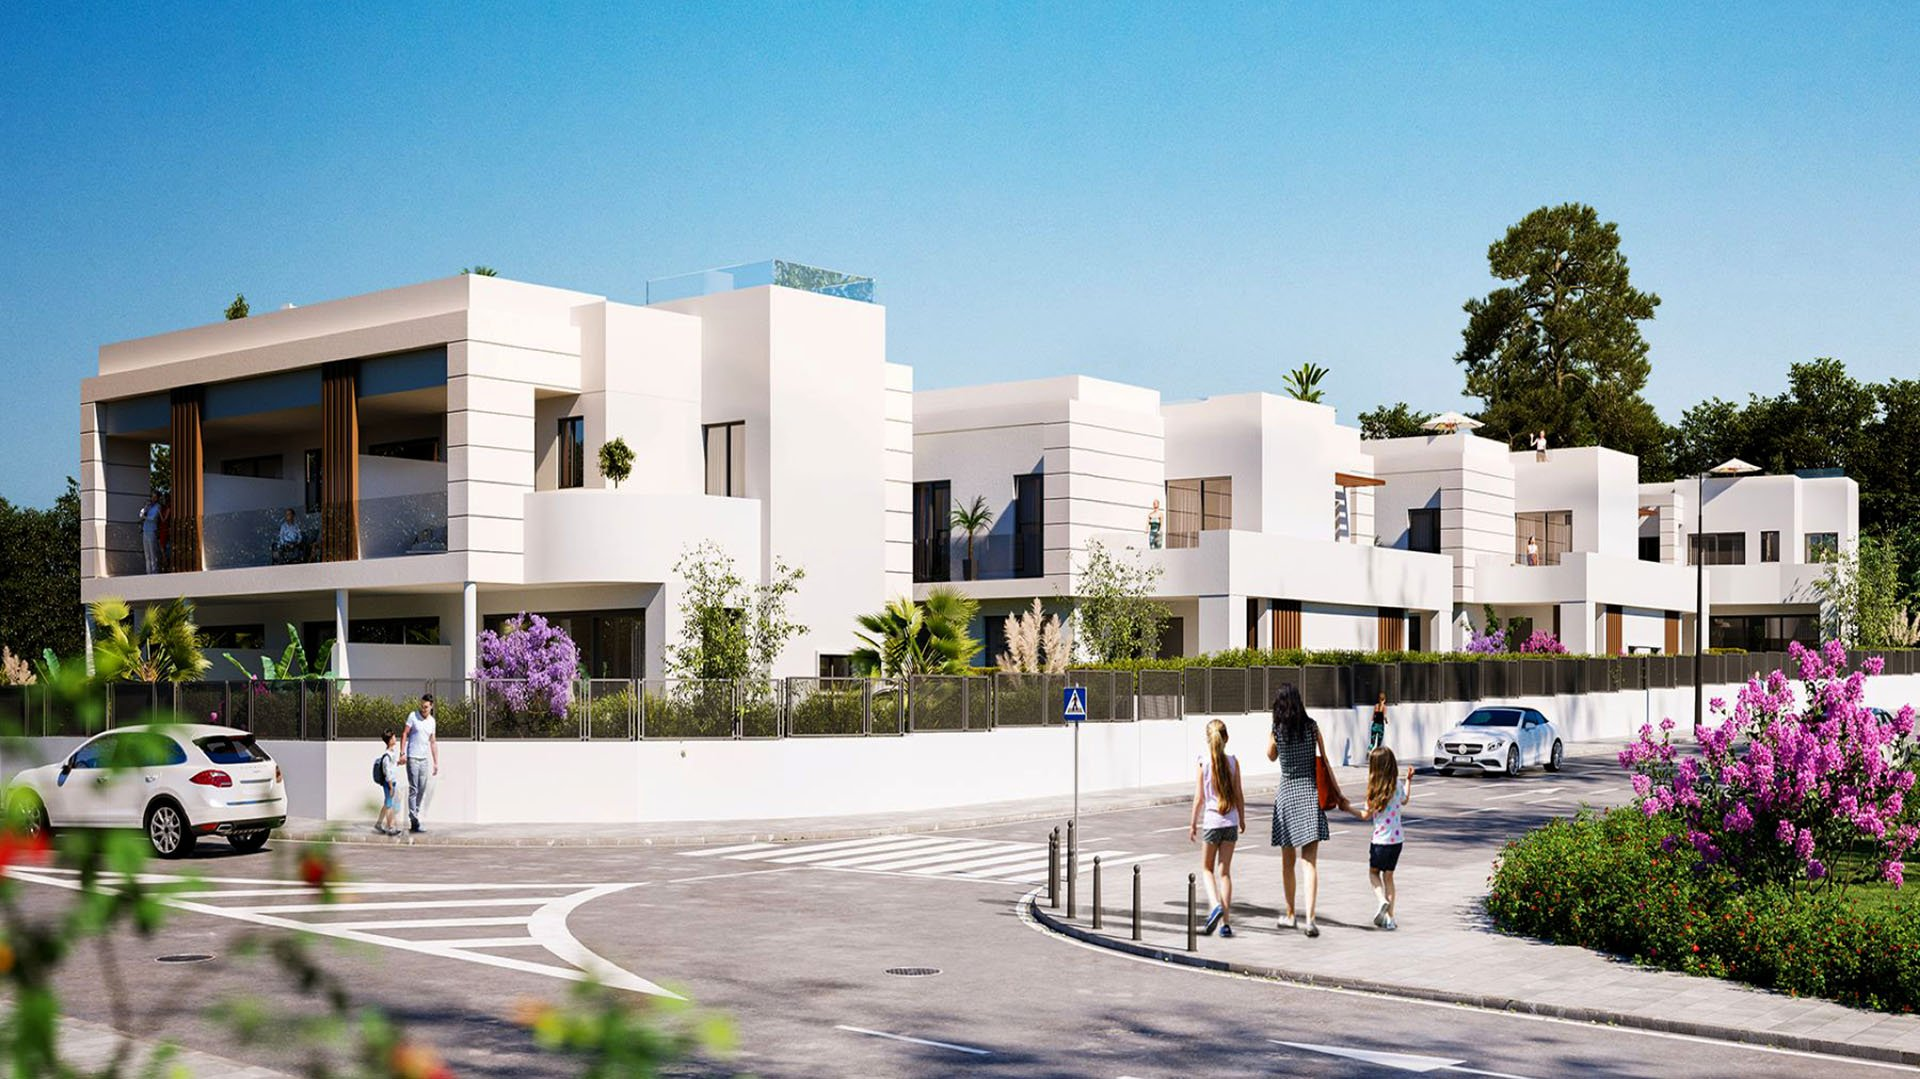 Los Miradores del Sol – Phase 3: Townhouses on the New Golden Mile